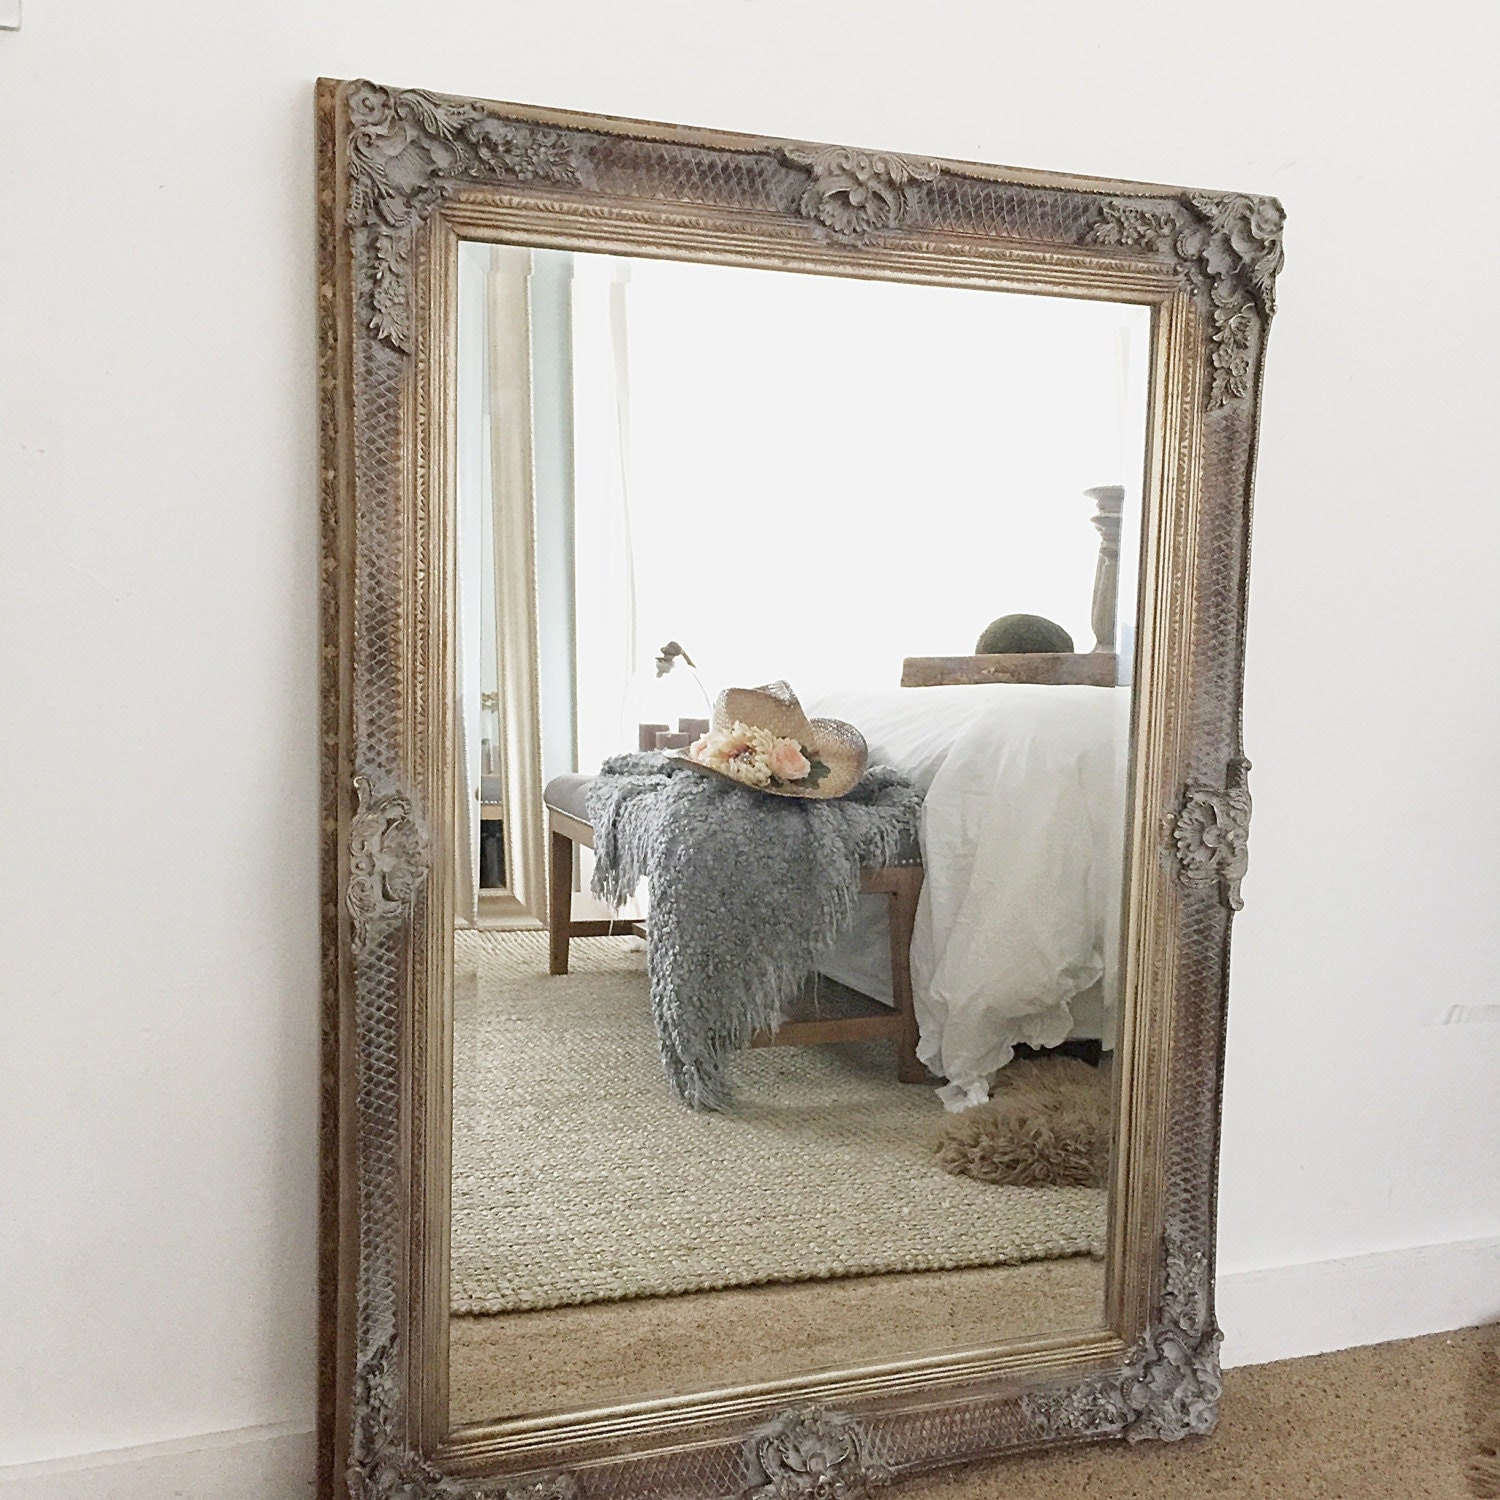 Large wall mirror decorative baroque bathroom mirror leaning for Leaning wall mirror